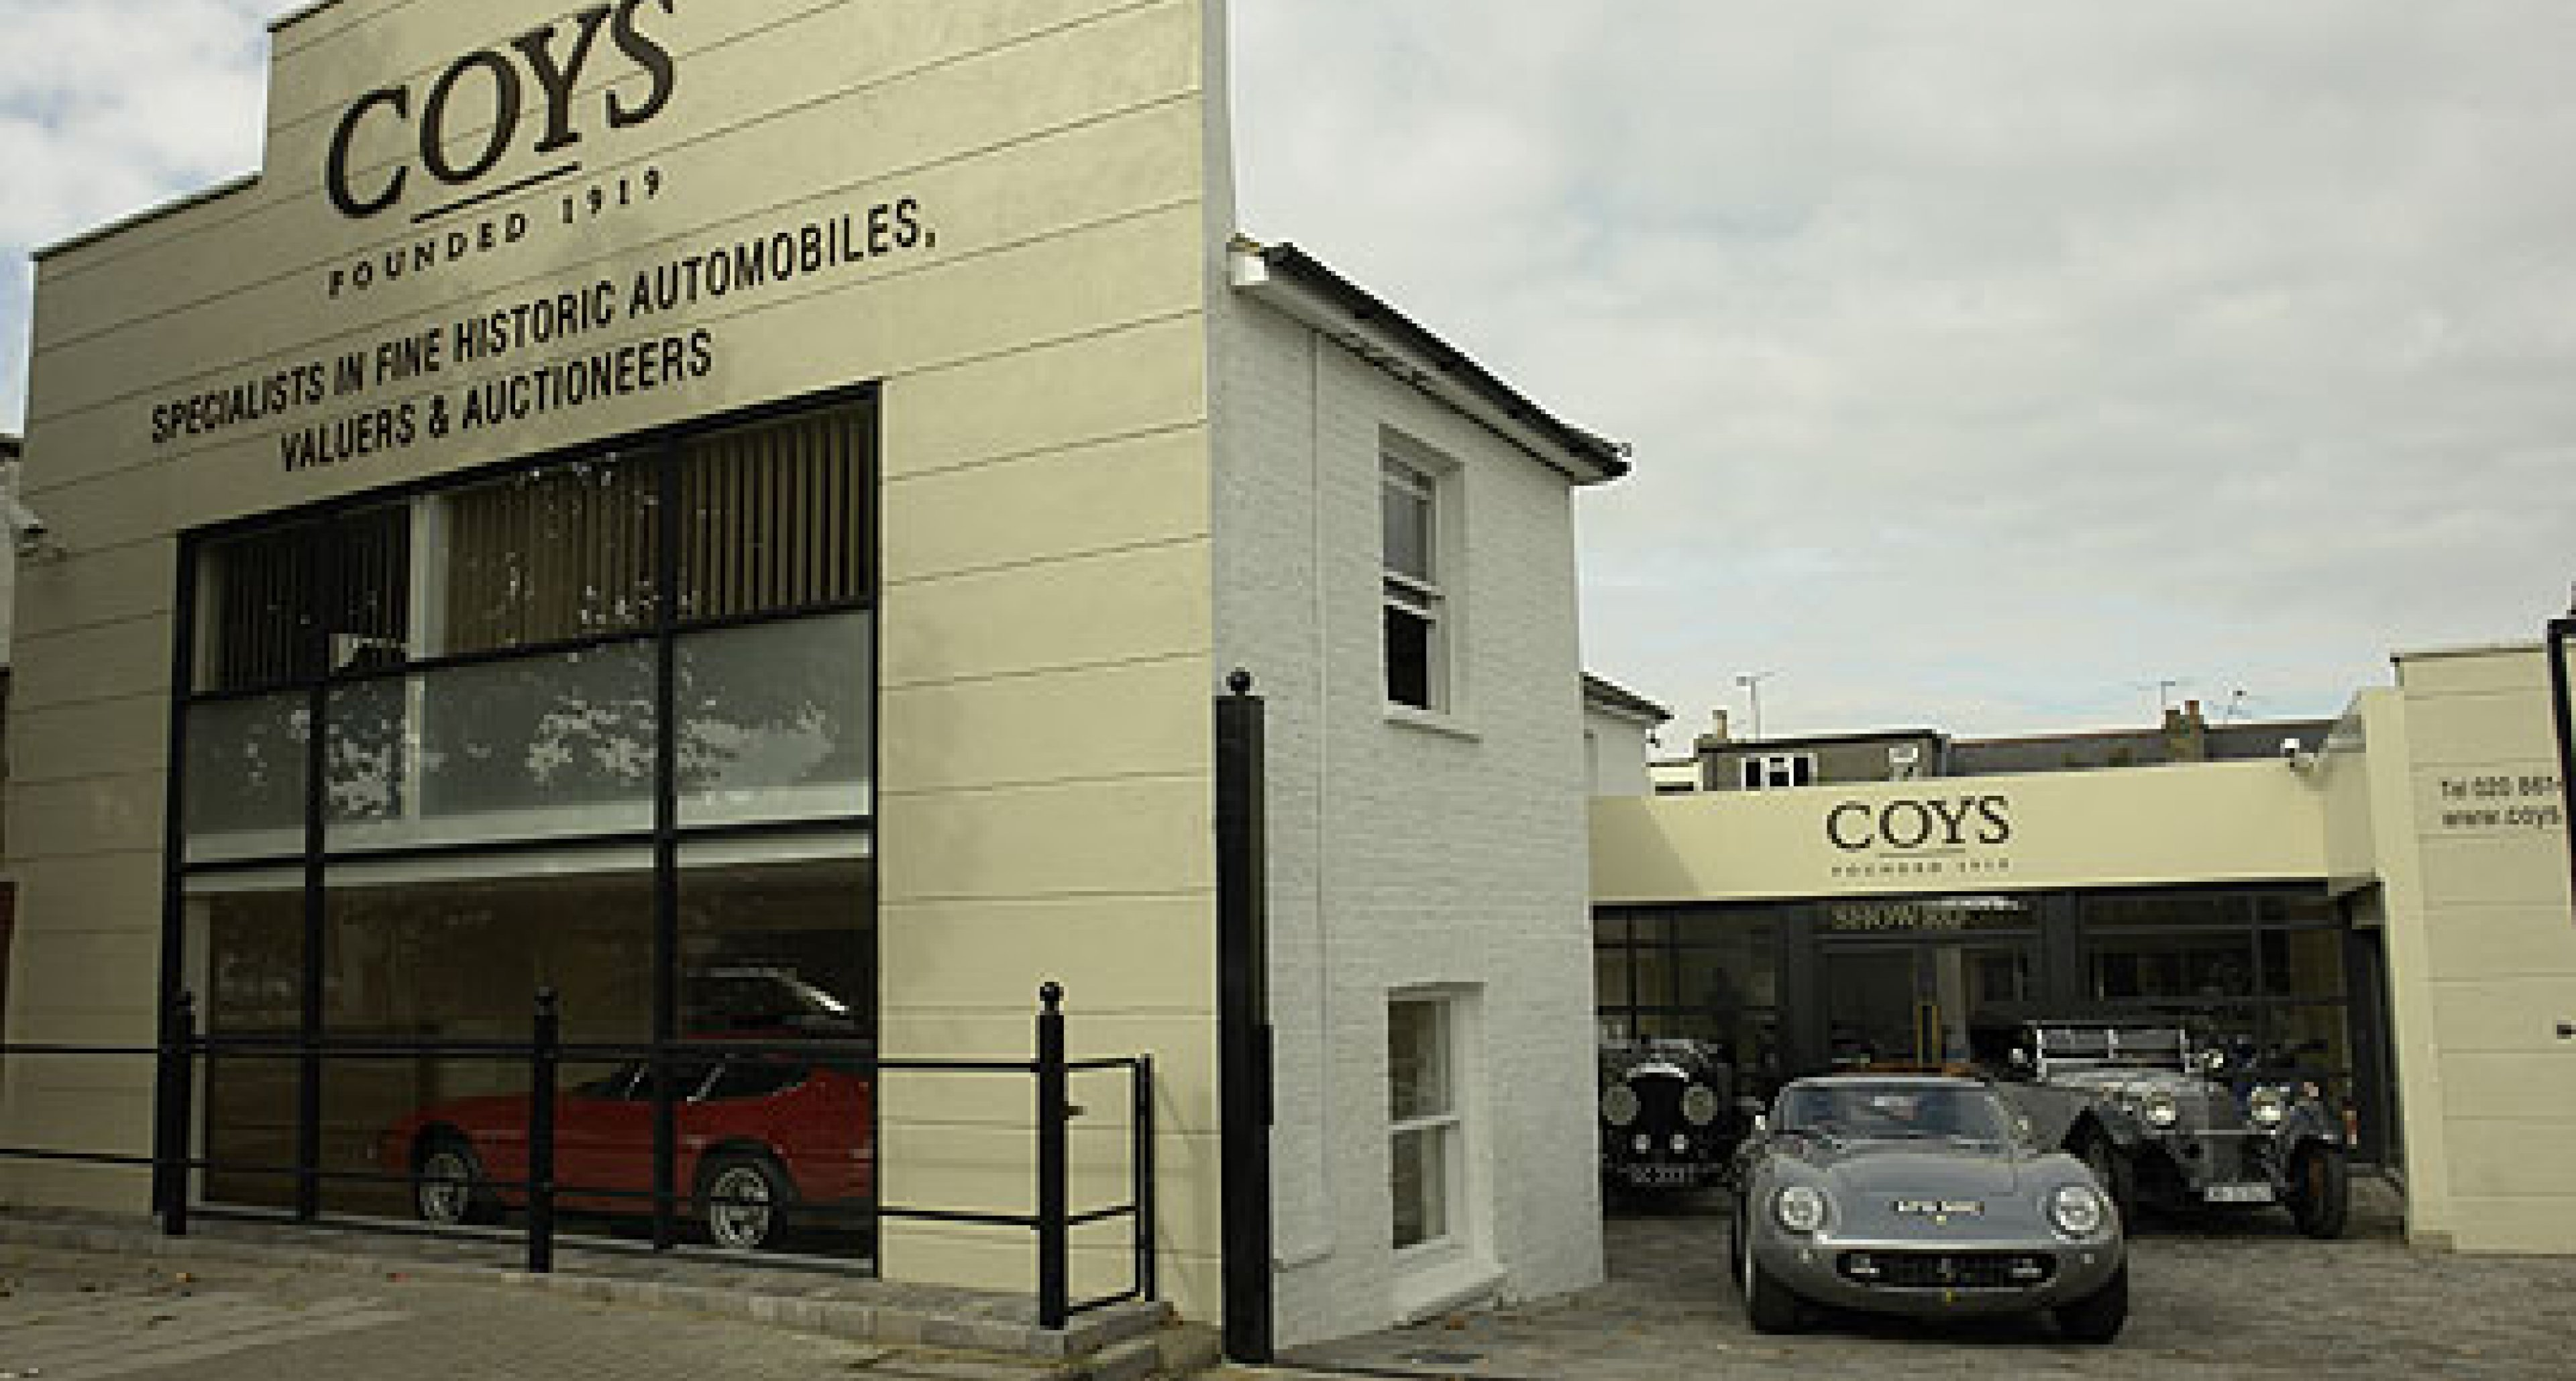 Coys – Retailer and Auction House